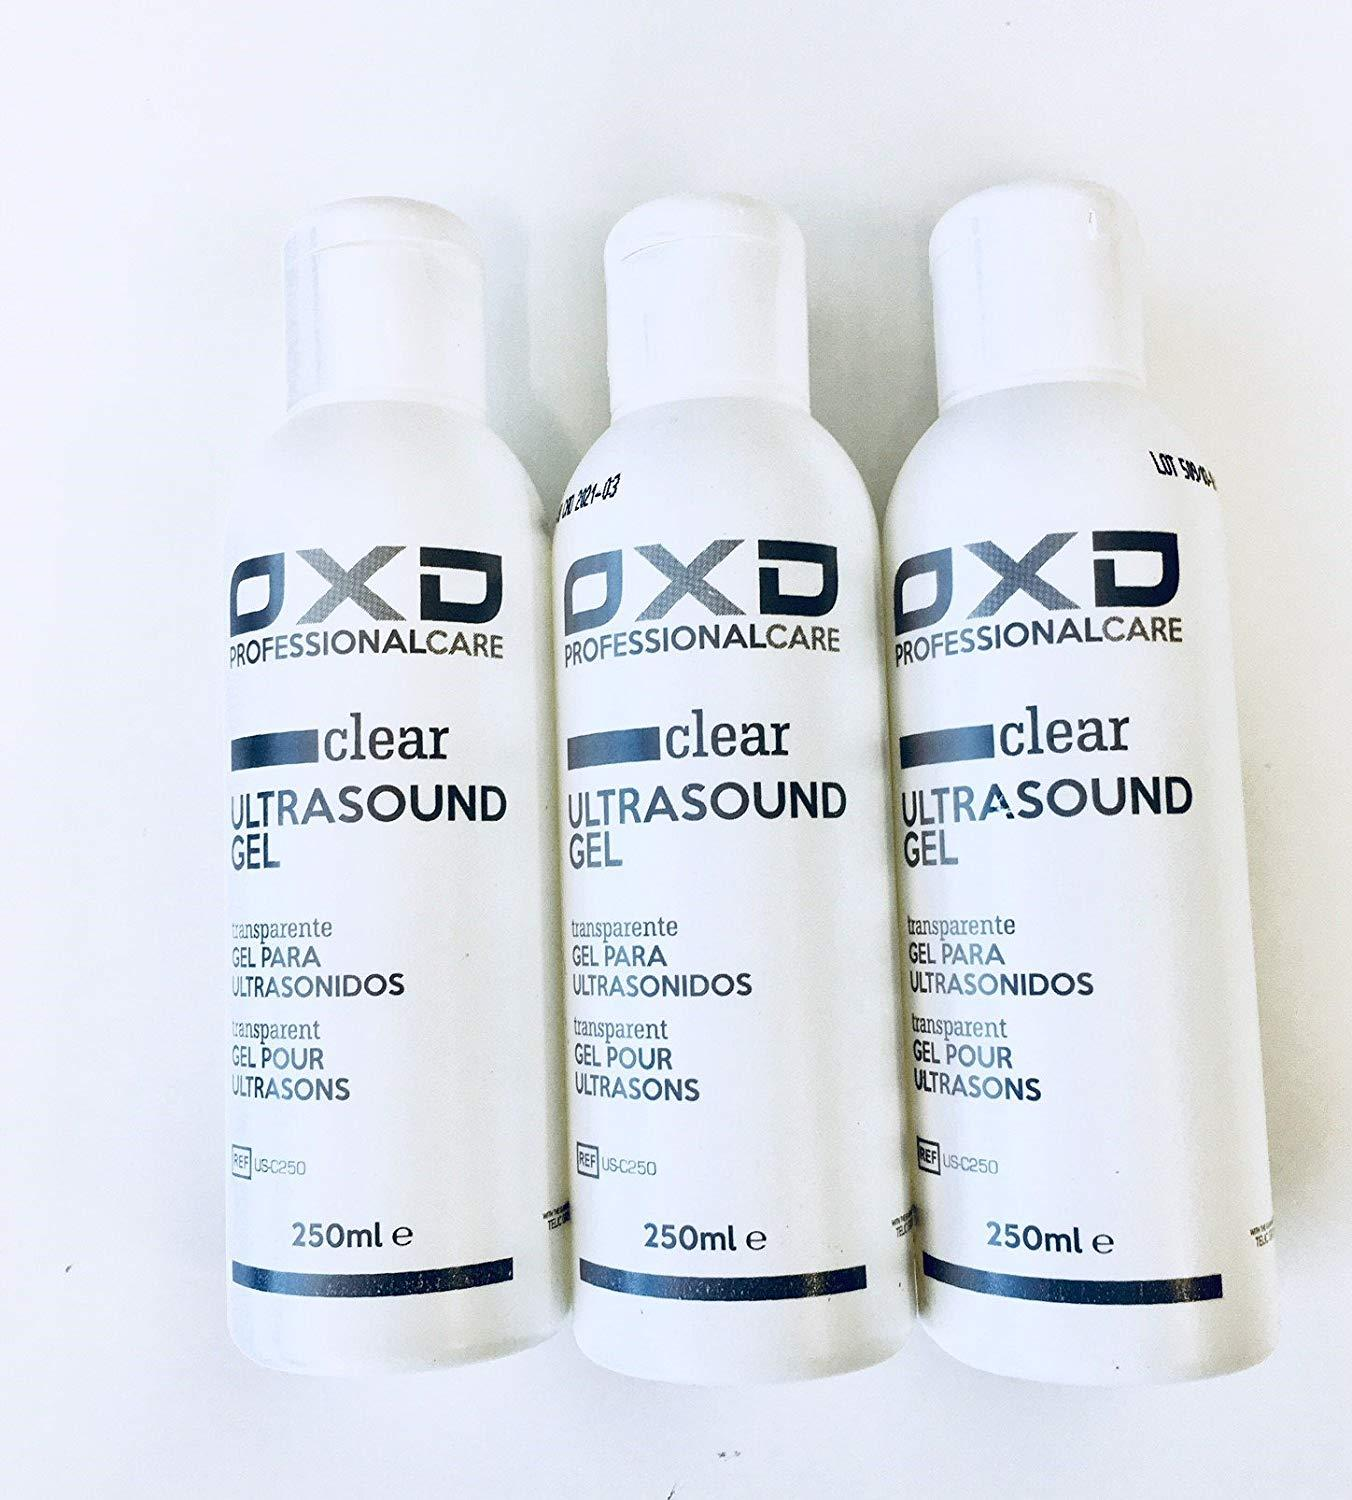 OXD conductive Gel for cavitation and promotion Ultrasonic 3X2